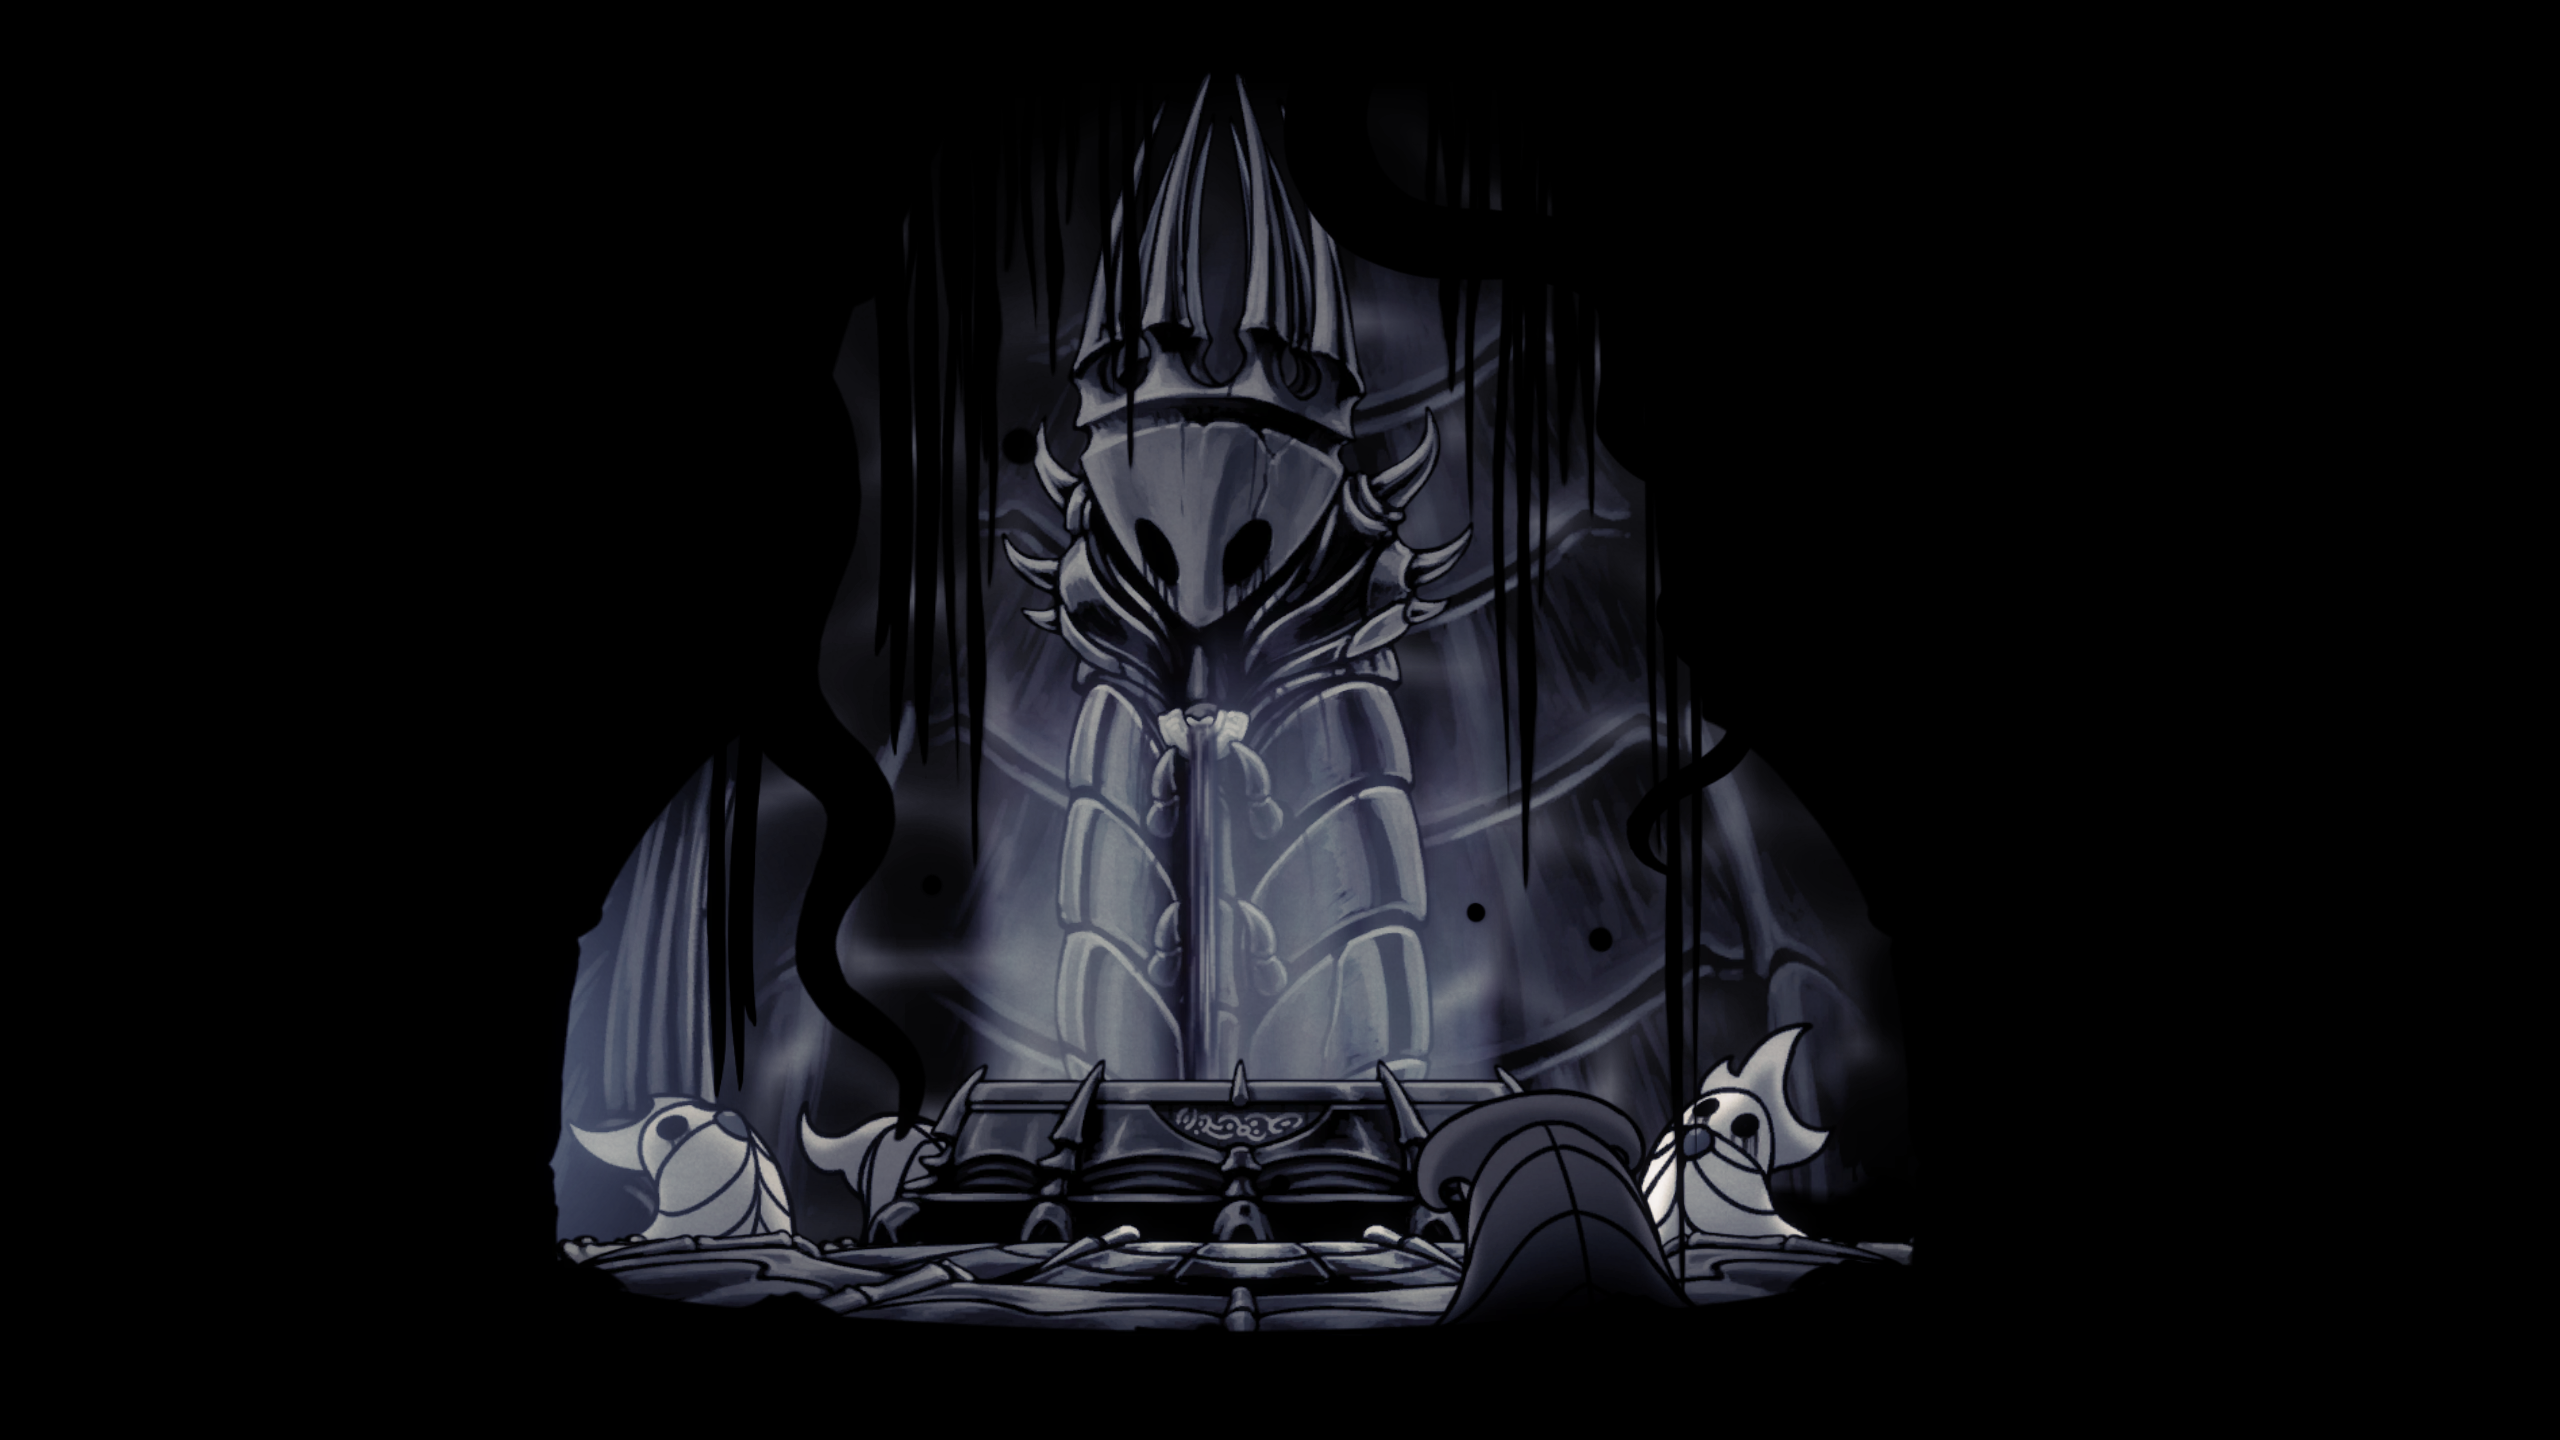 Void Hollow Knight Wiki Fandom Select your favorite images and download them for use as wallpaper for your desktop or phone.